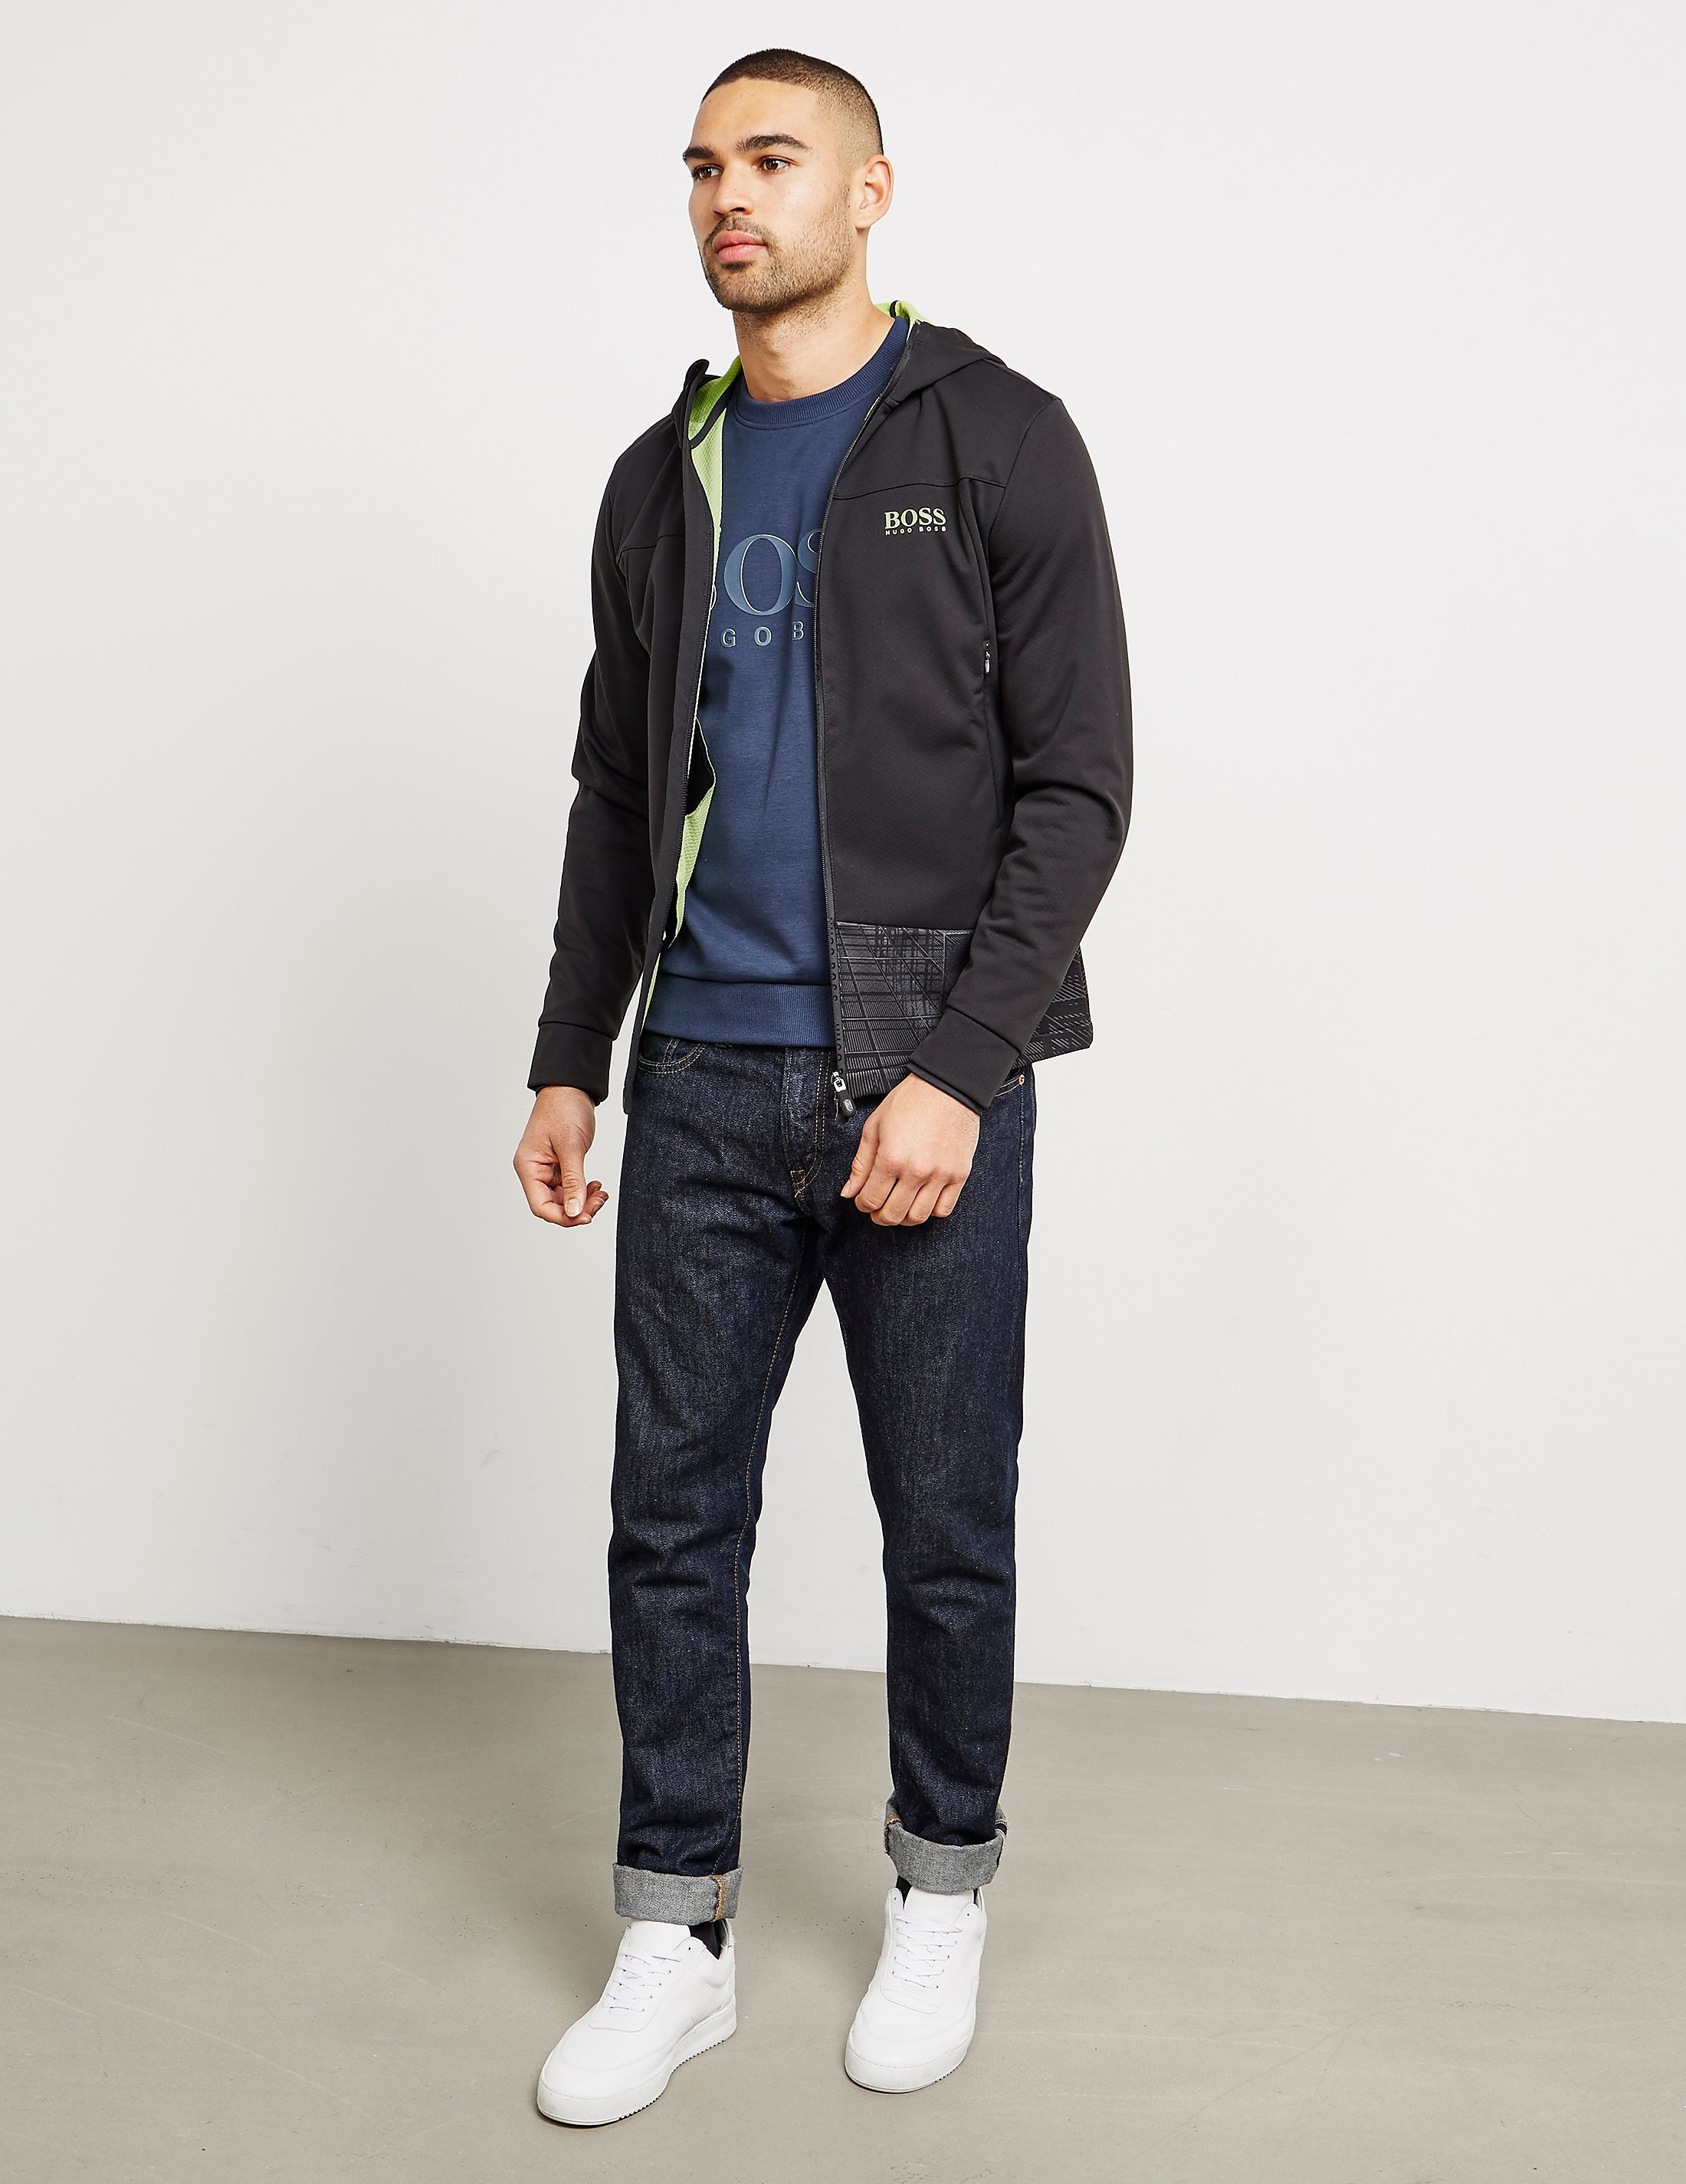 BOSS Green Sytech Lightweight Shell Jacket